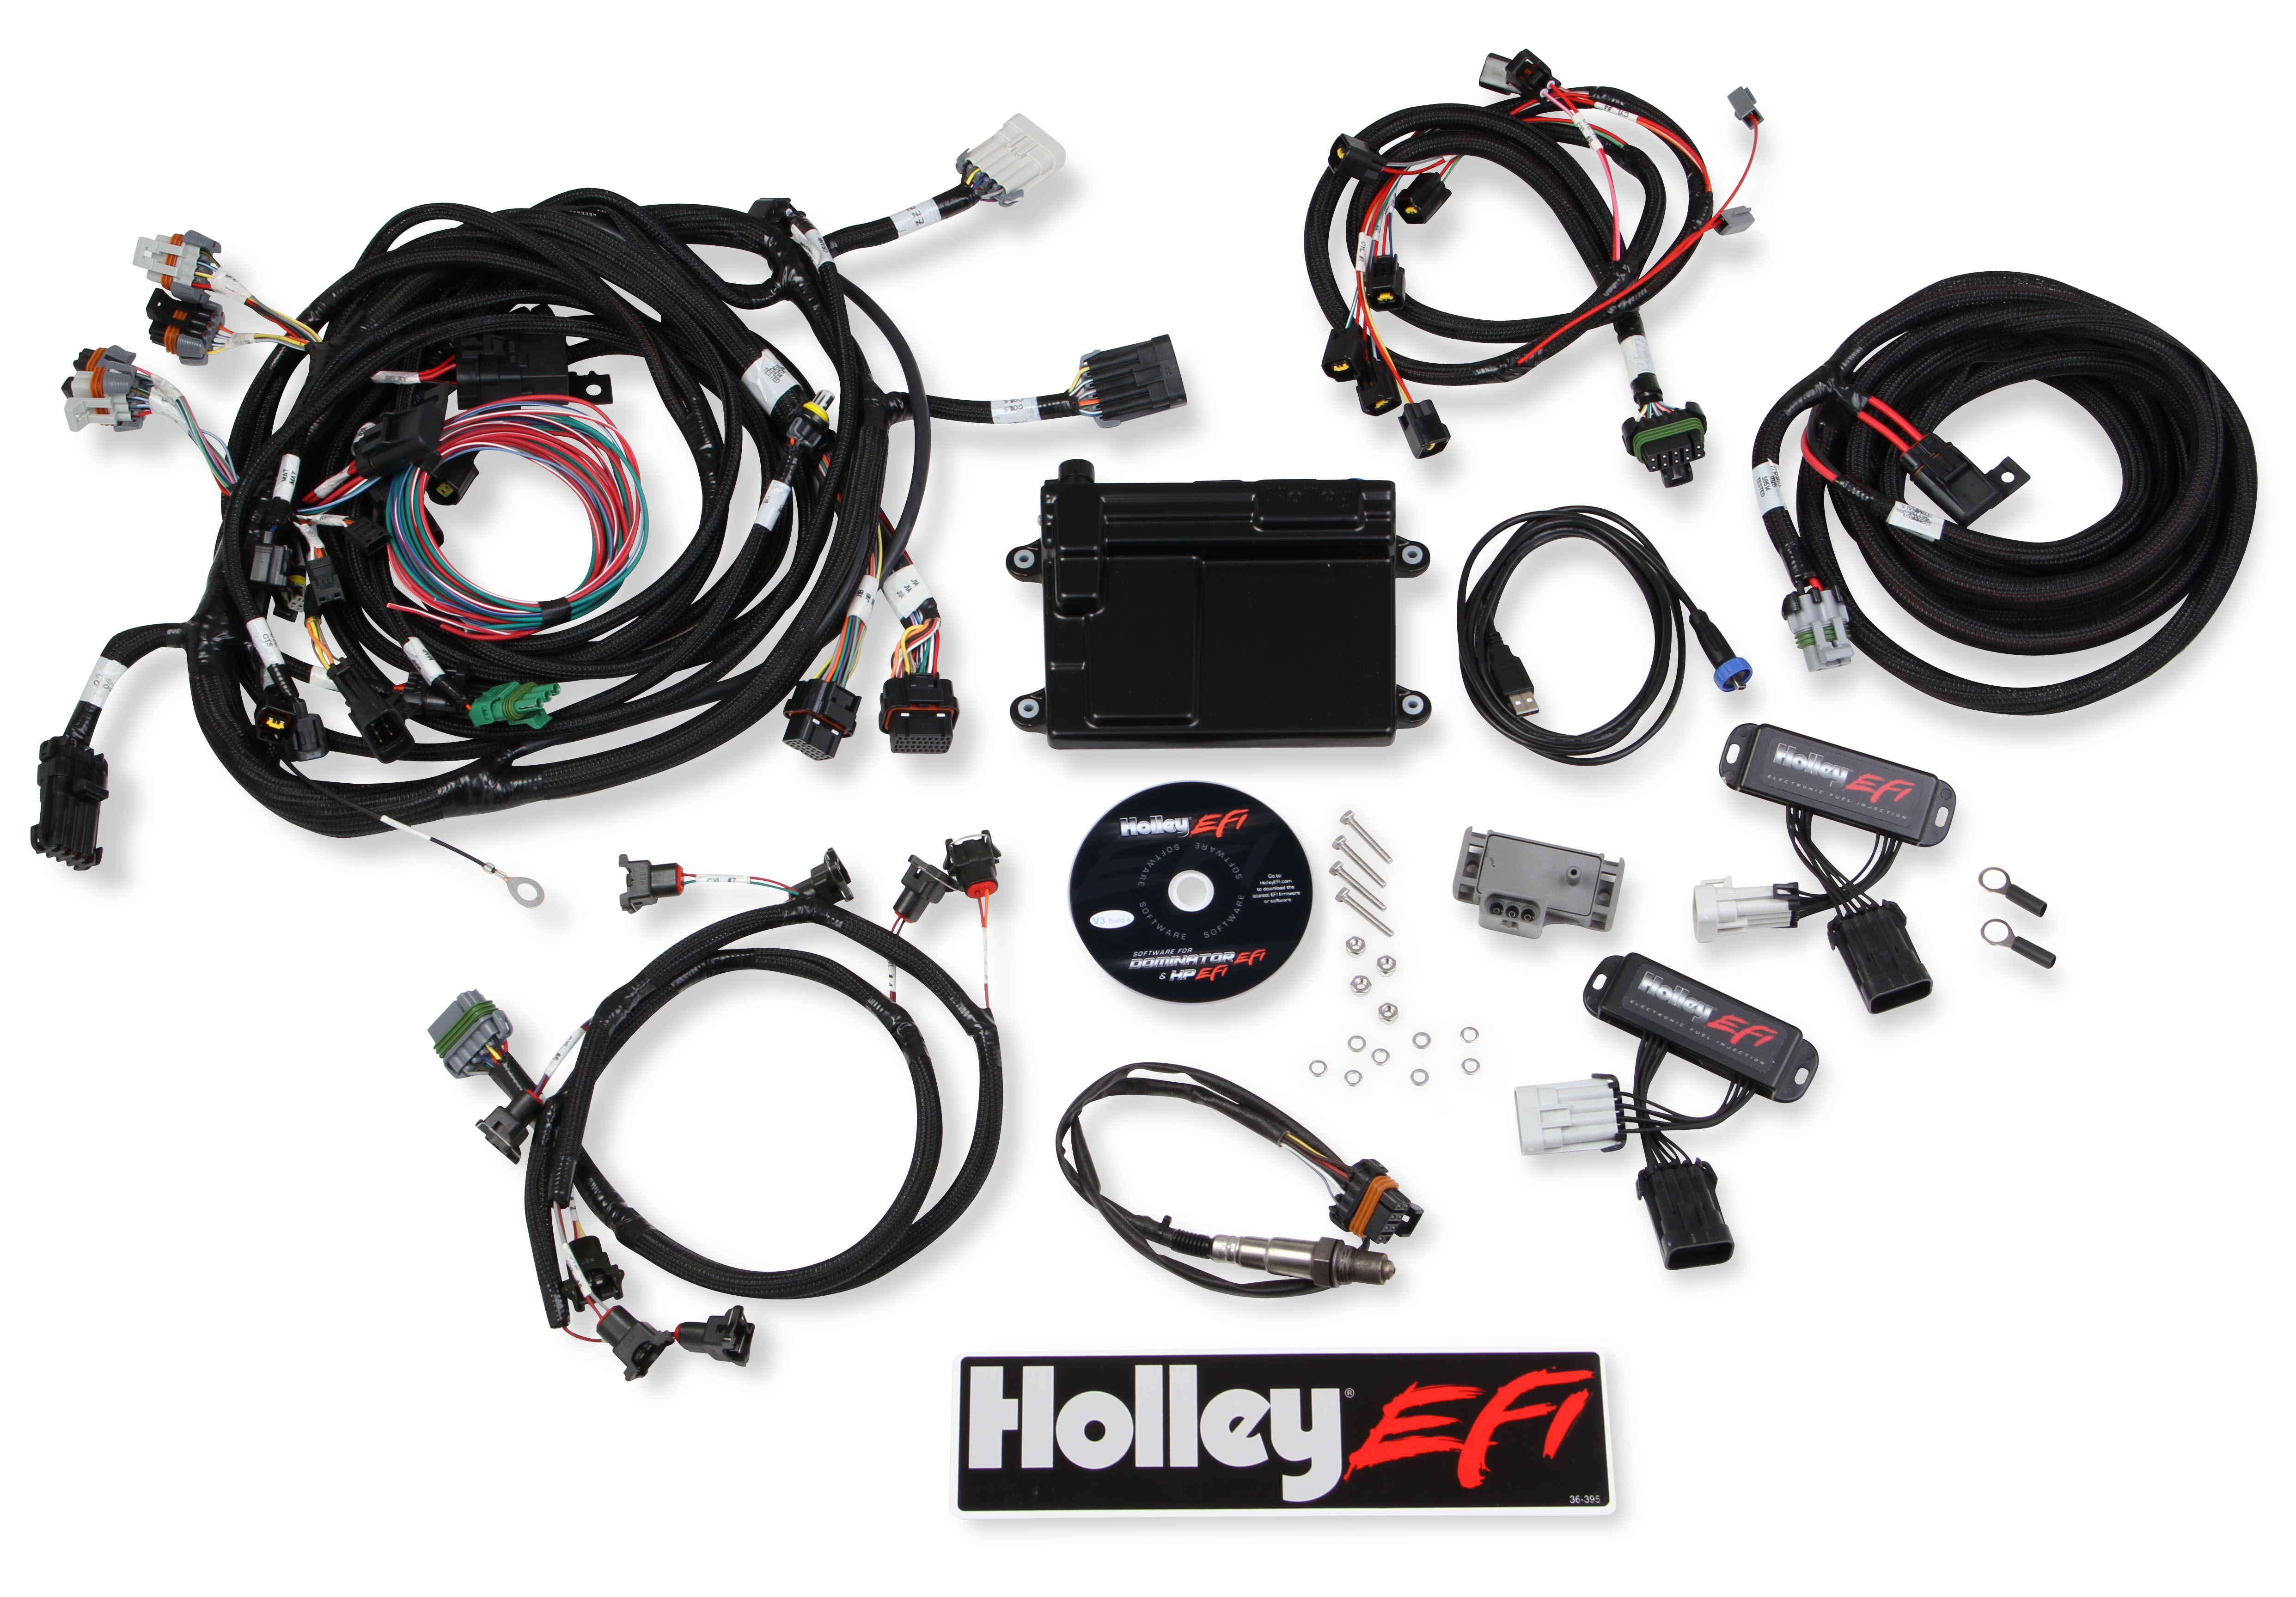 ford efi wiring harness kits wiring diagrams detailed dodge sprinter engine harness holley 99 04 ford modular 4 valve hp efi ecu & harness kits ford engine wiring harness ford efi wiring harness kits